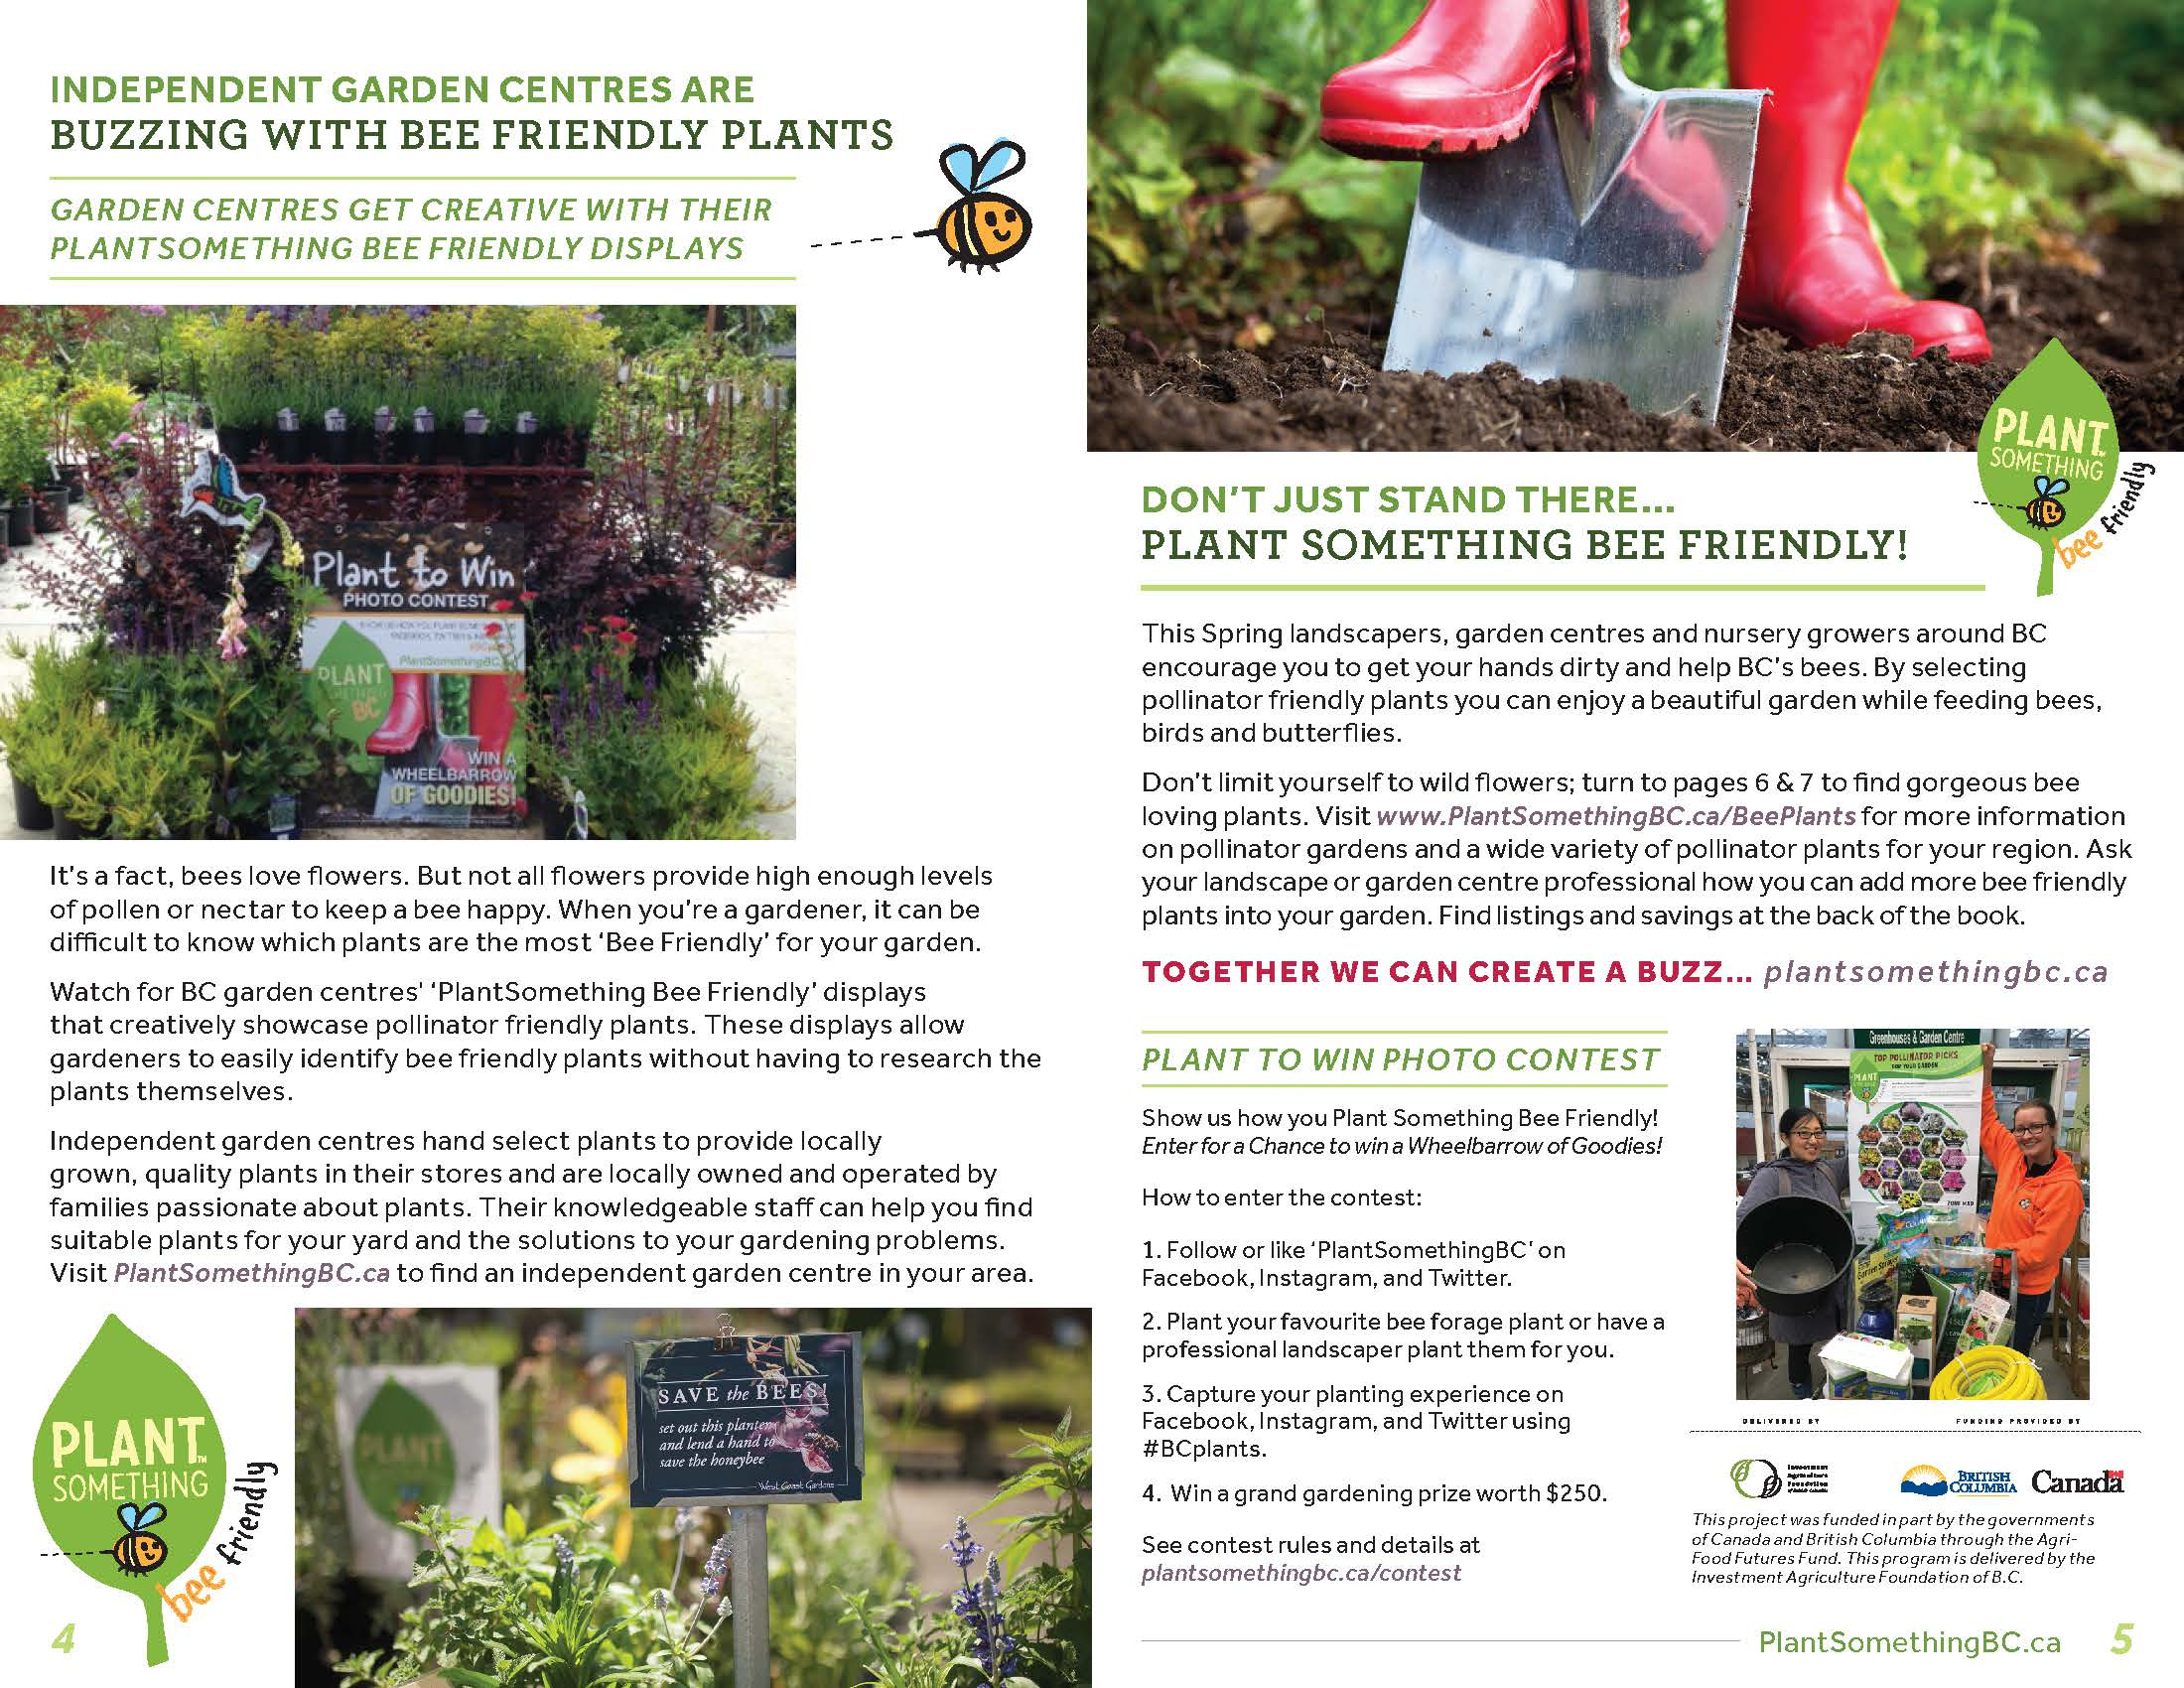 BCLNA_GardenWise_Booklet_FA_ReaderSpreads_Page_03.jpg